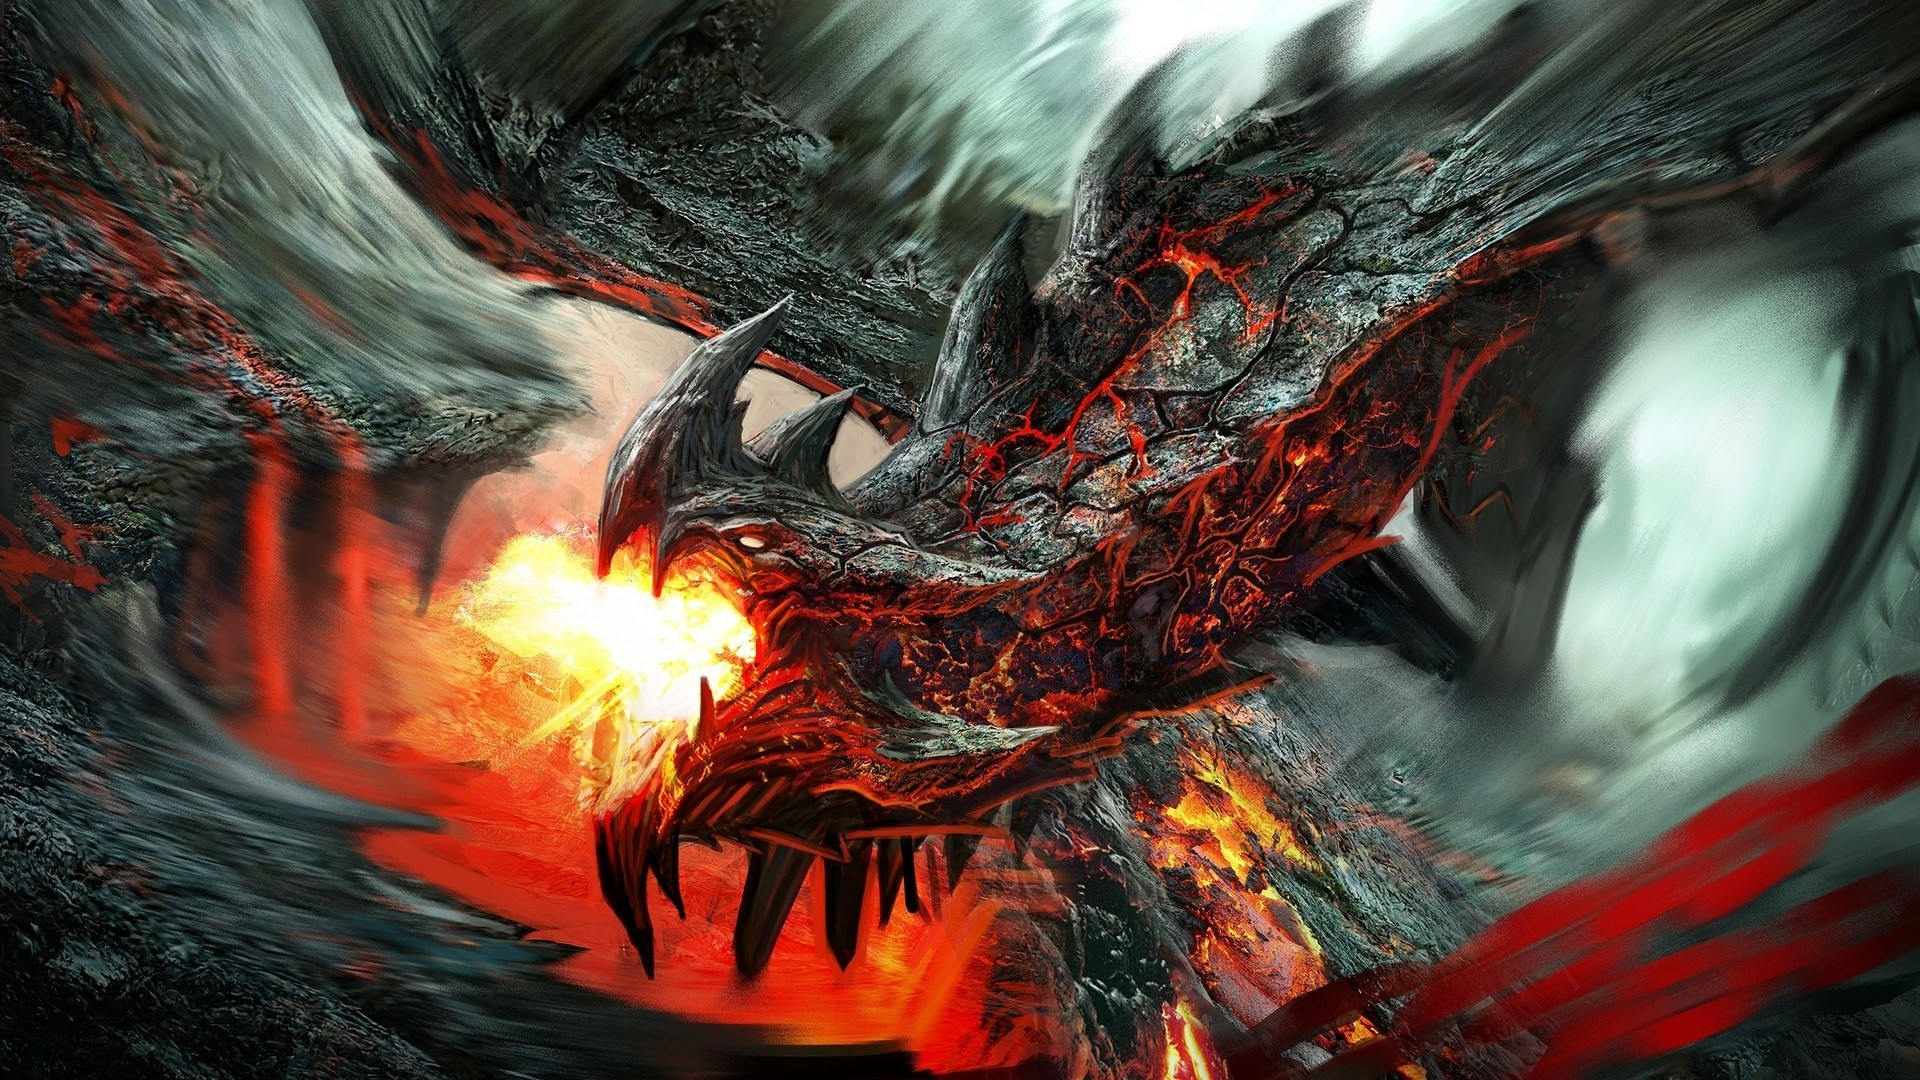 51 dragon wallpapers download free amazing full hd wallpapers